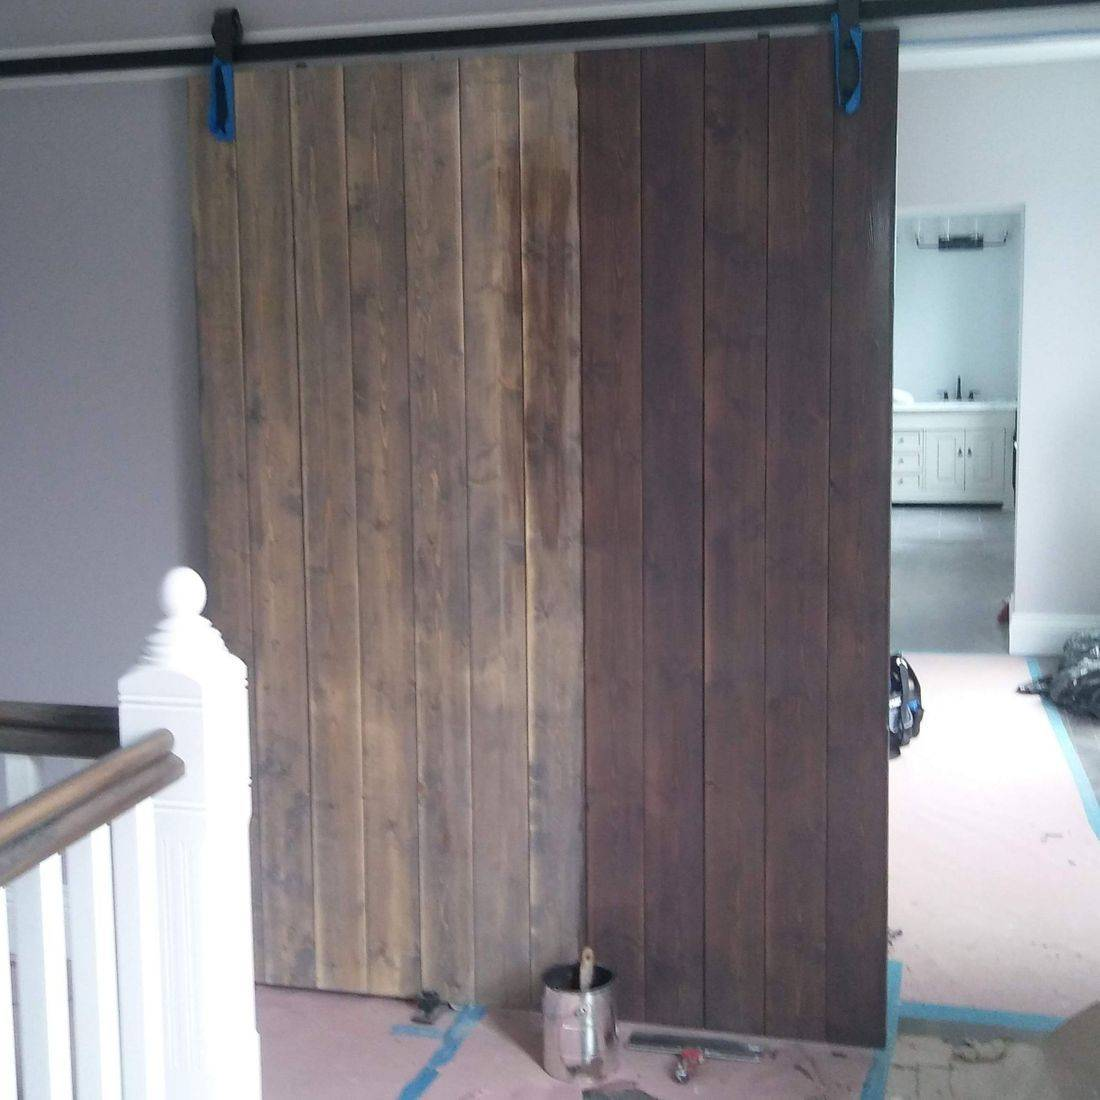 cabinfront door refinishing and restoration, Cincinnati Ohio, Scott Fritz Wall Creationset painting, refinishing, cabinet resurfacing, kitchen cabinet painting, custom painting, cincinnati, ohio, scott fritz, wall creations, Cincinnati, Ohio